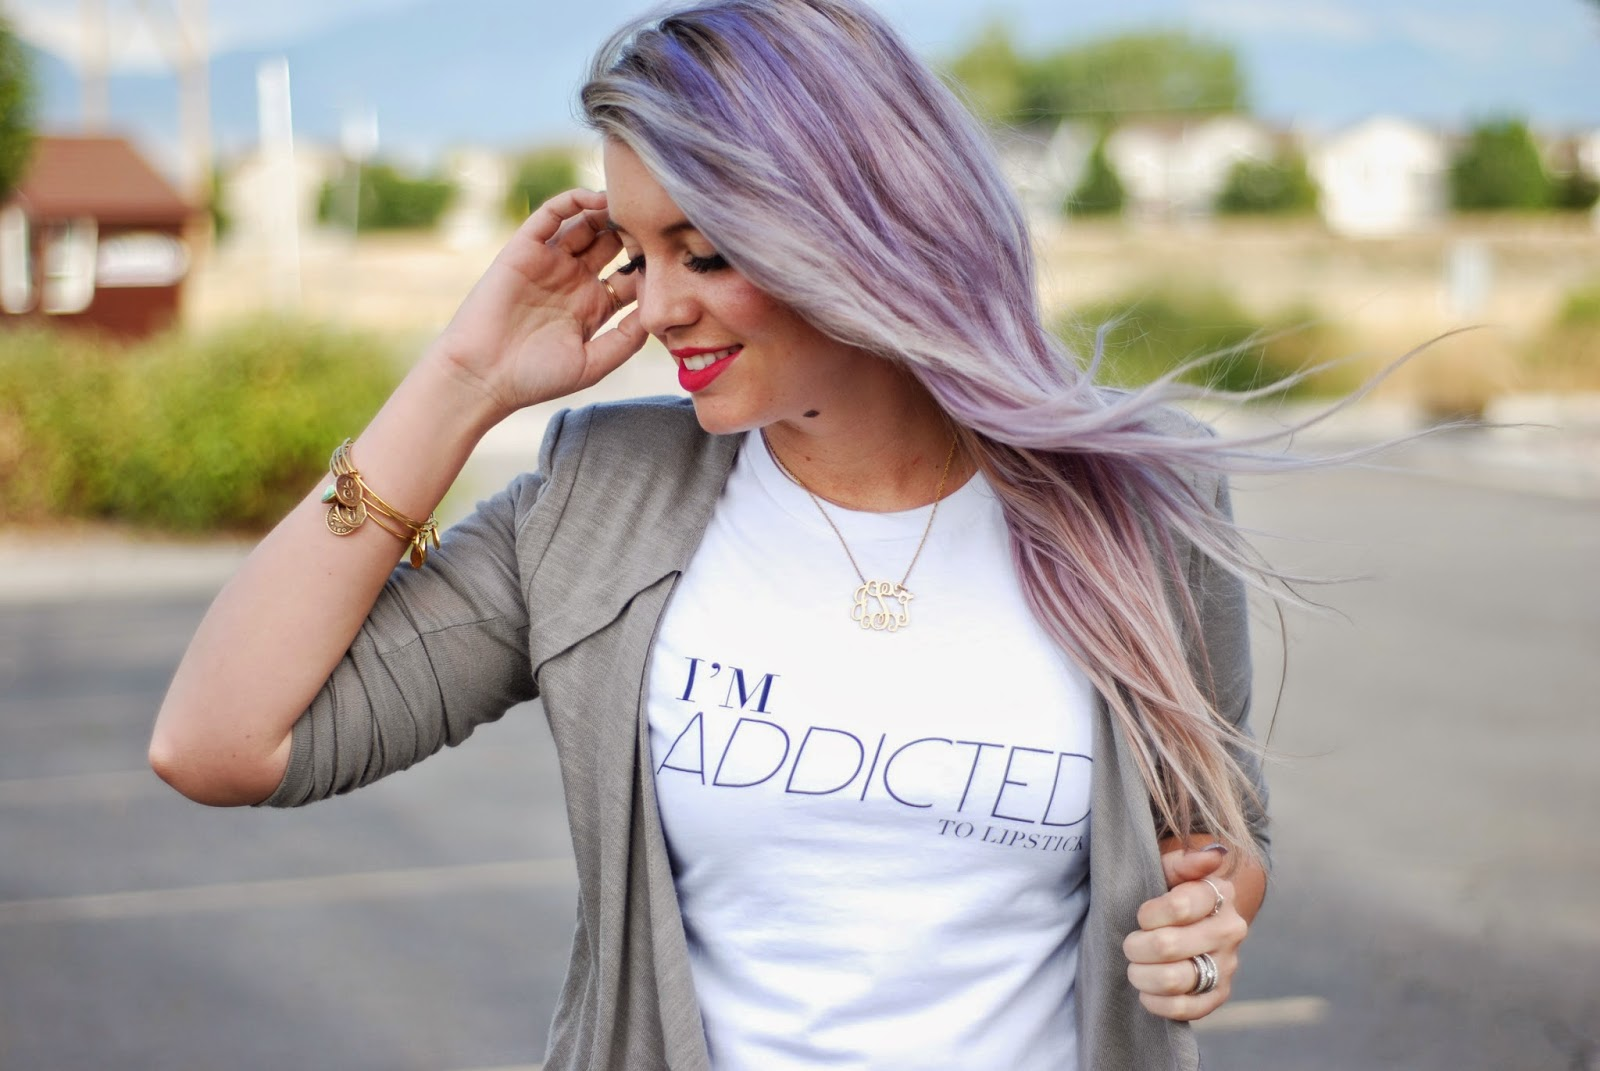 I'm Addicted To Lipstick Shirt, Utah Fashion Blogger